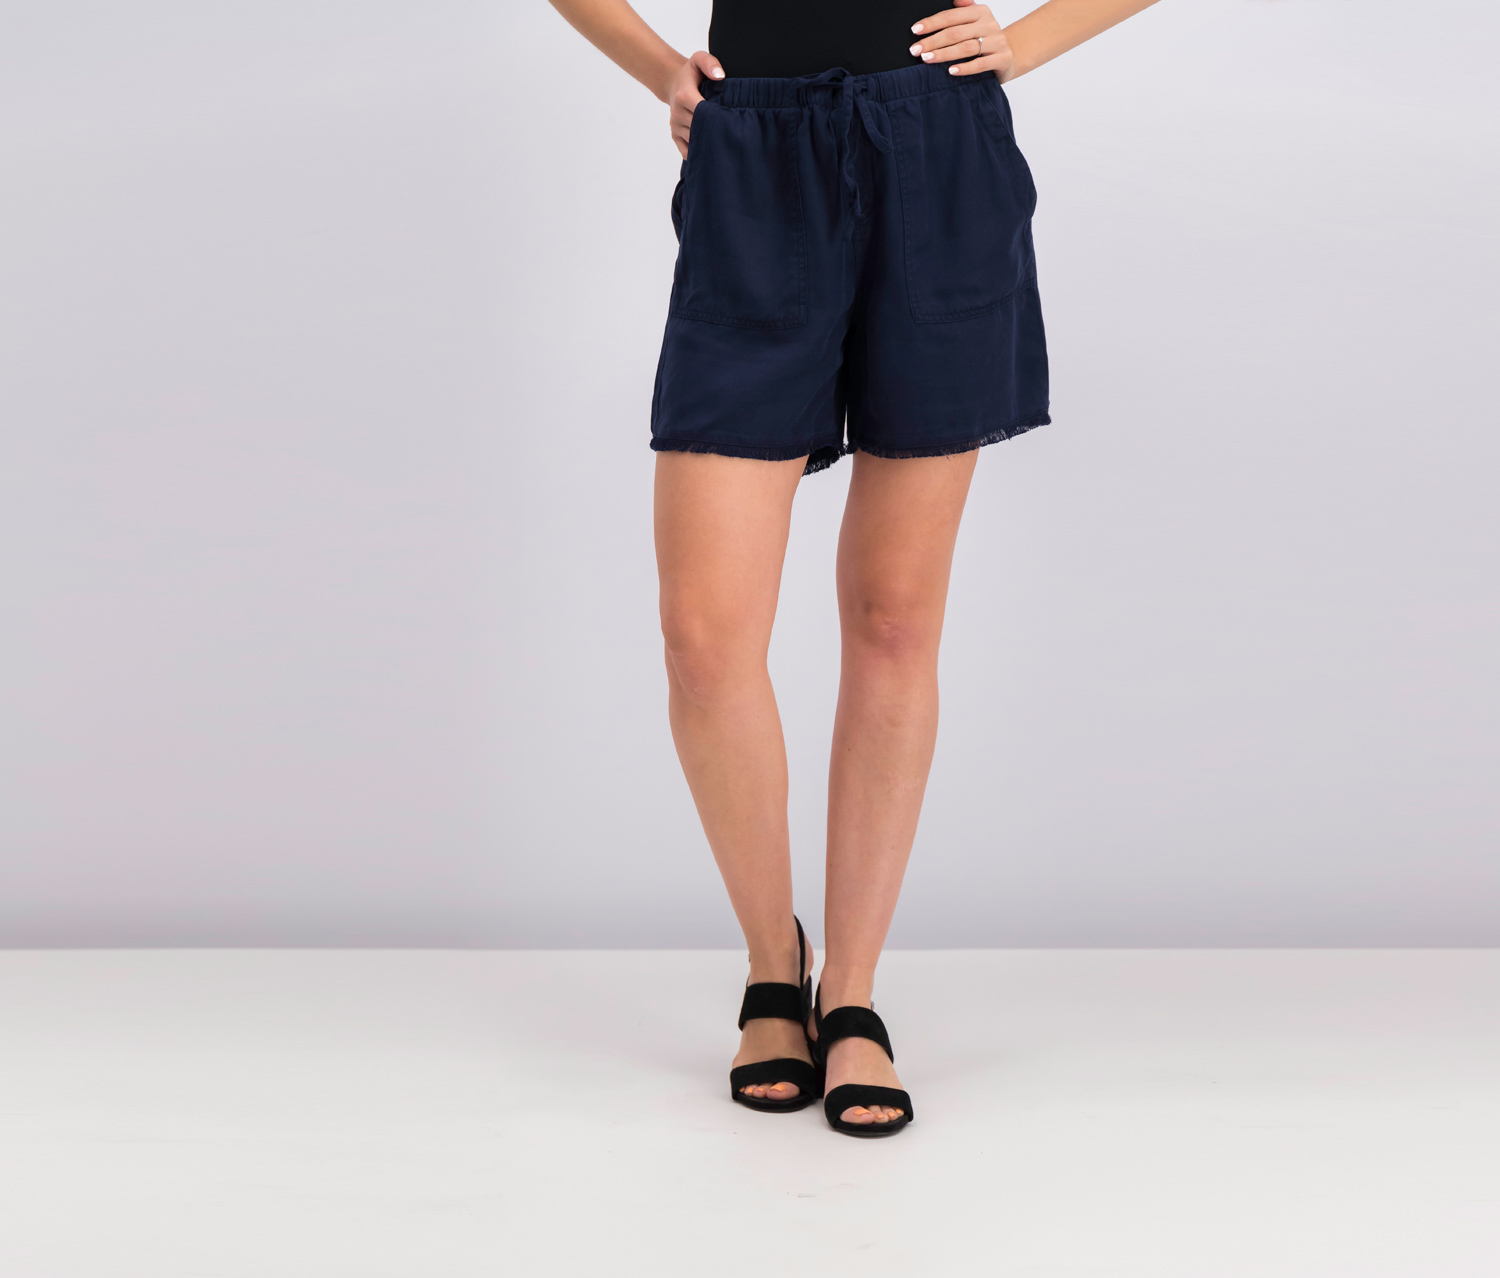 Style Co Frayed-Hem Pull-On Shorts, Industrial Blue